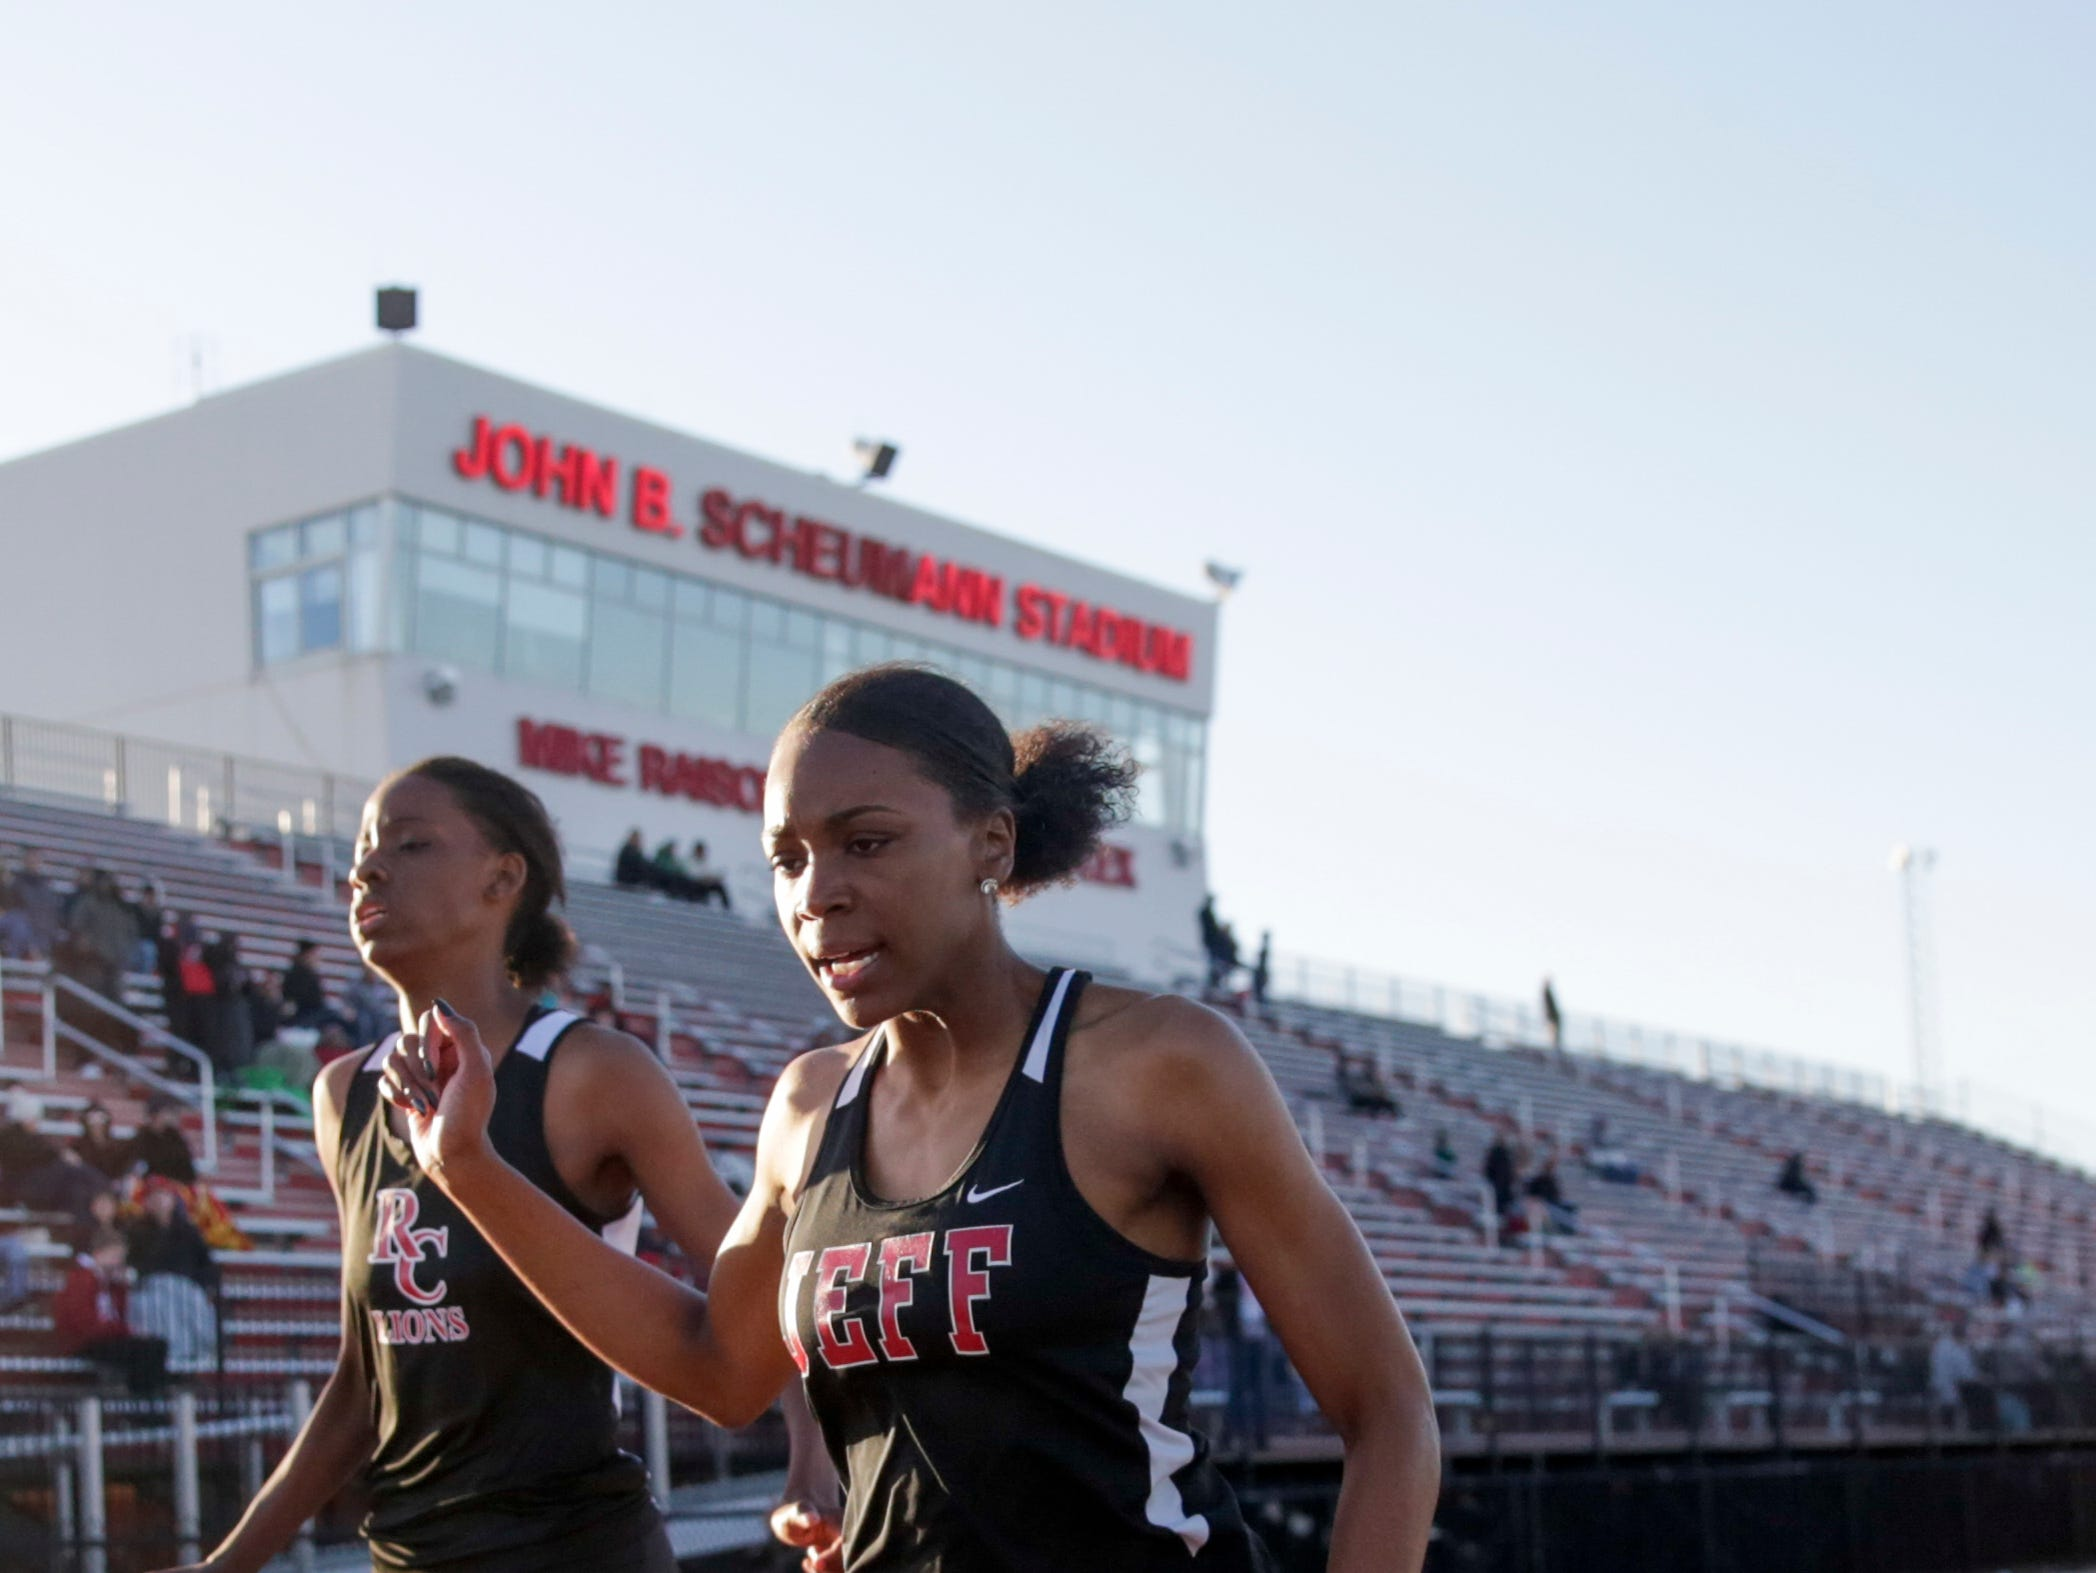 Lafayette Jeff's Kela Haskins crosses the finish line in the women's 200 meter dash during the 2019 Sprinters Showcase, Friday, April 12, 2019, at Lafayette Jeff High School in Lafayette.